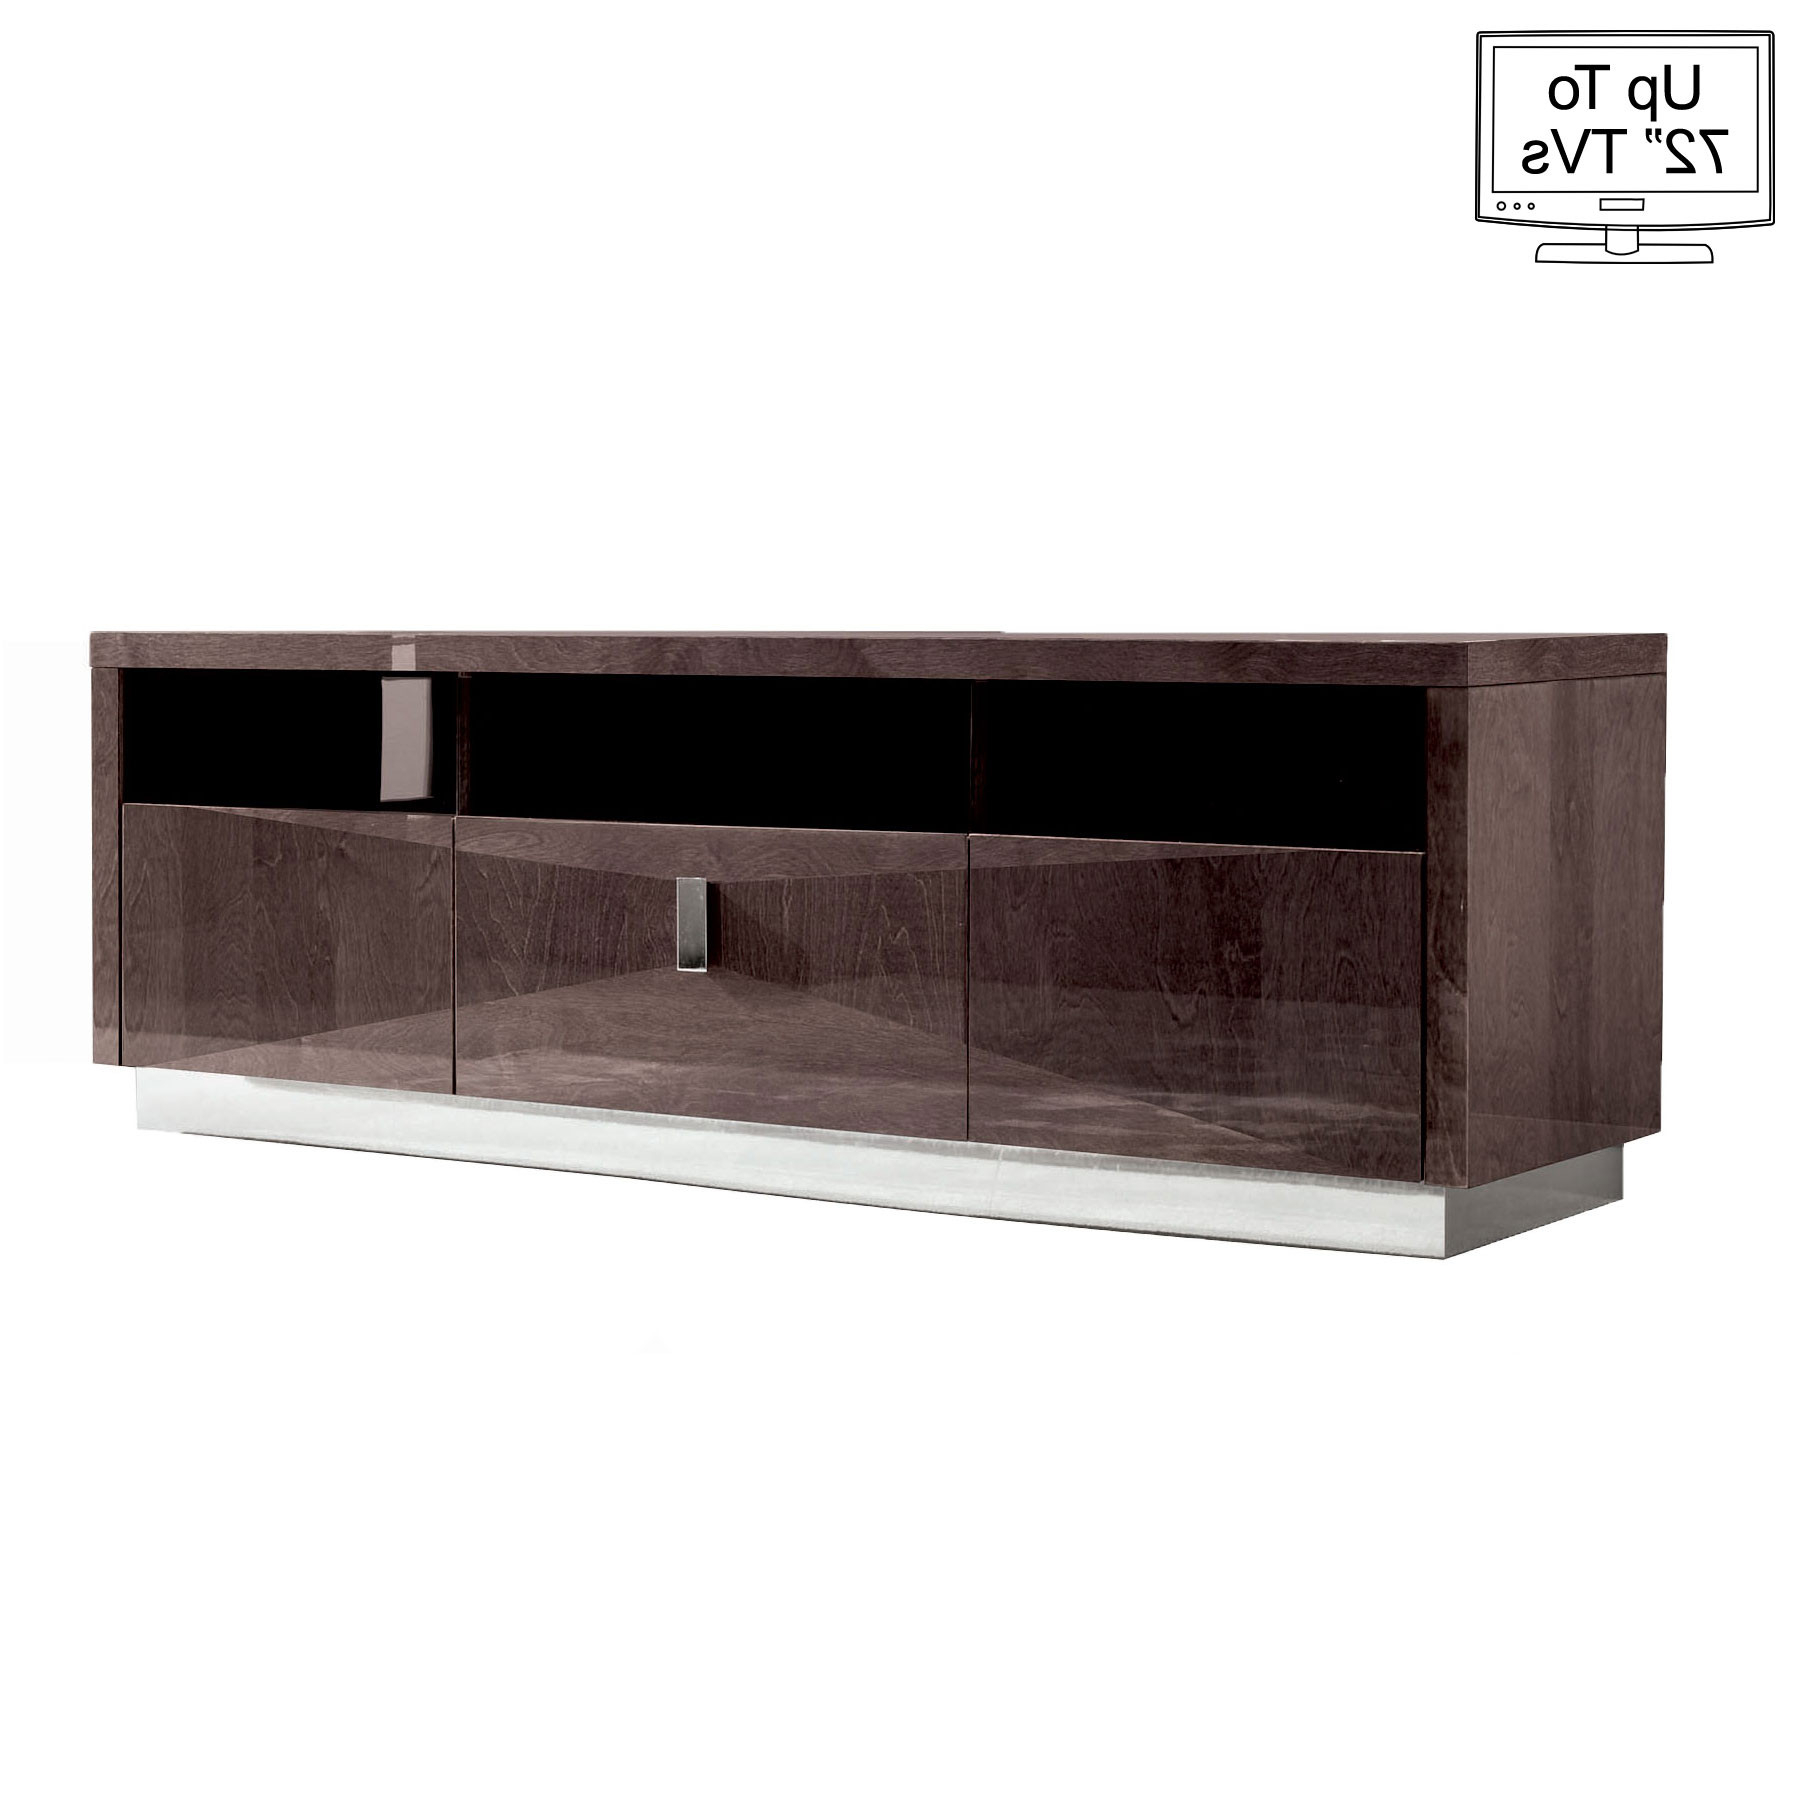 "Vogue High Gloss Tv Stand For Up To 72"" Tvs Inside Widely Used Gloss Tv Stands (Gallery 14 of 20)"